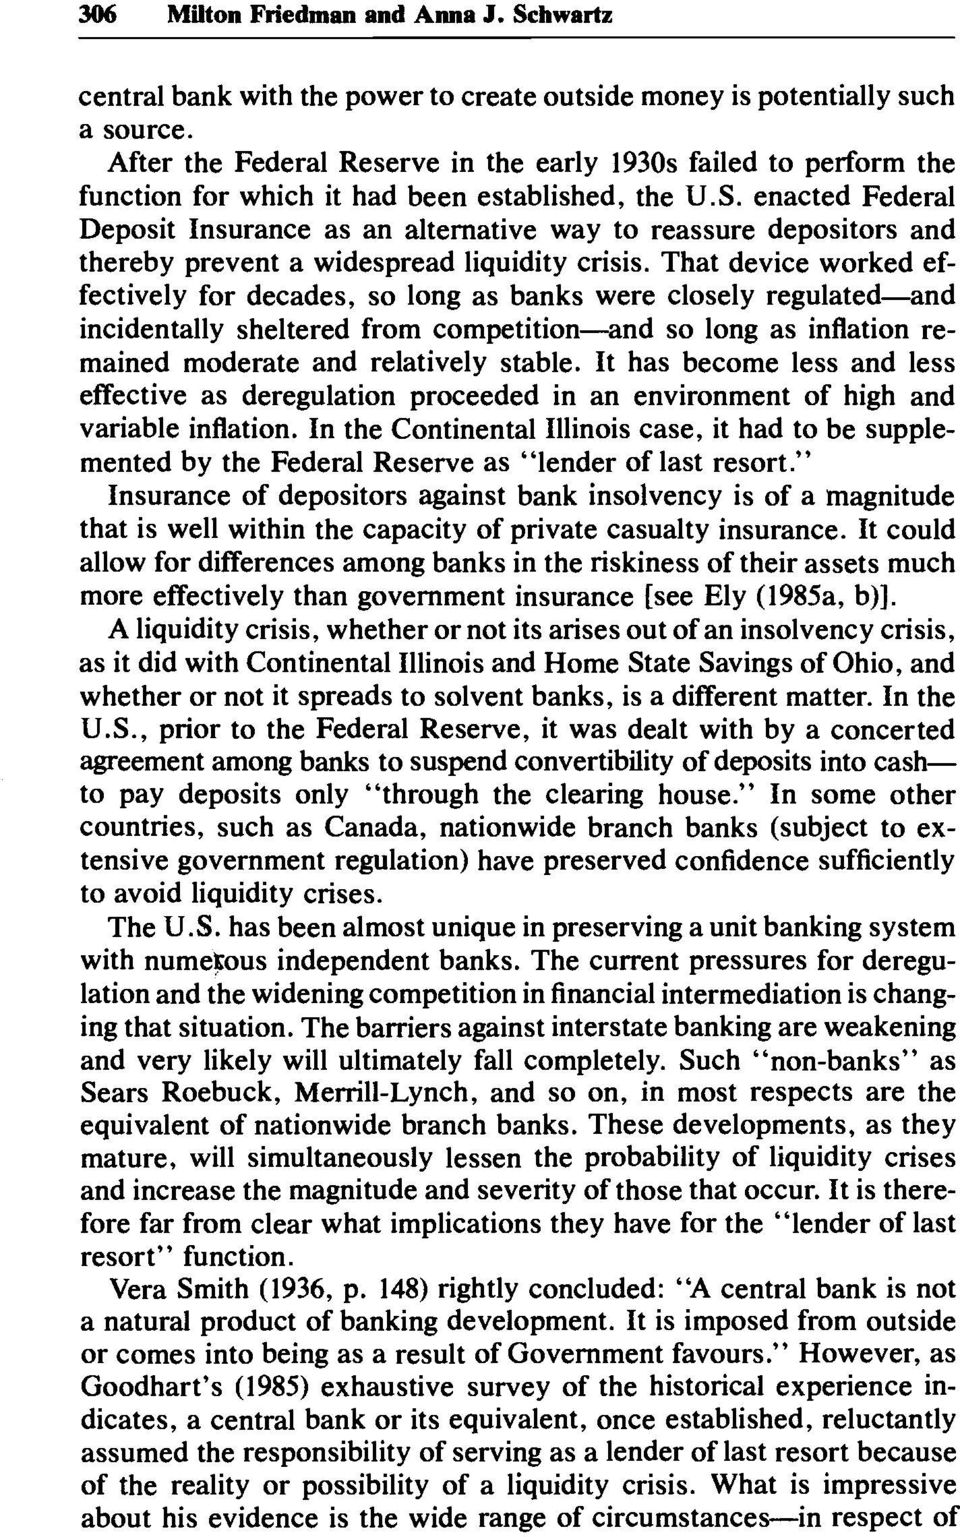 enacted Federal Deposit Insurance as an alternative way to reassure depositors and thereby prevent a widespread liquidity crisis.